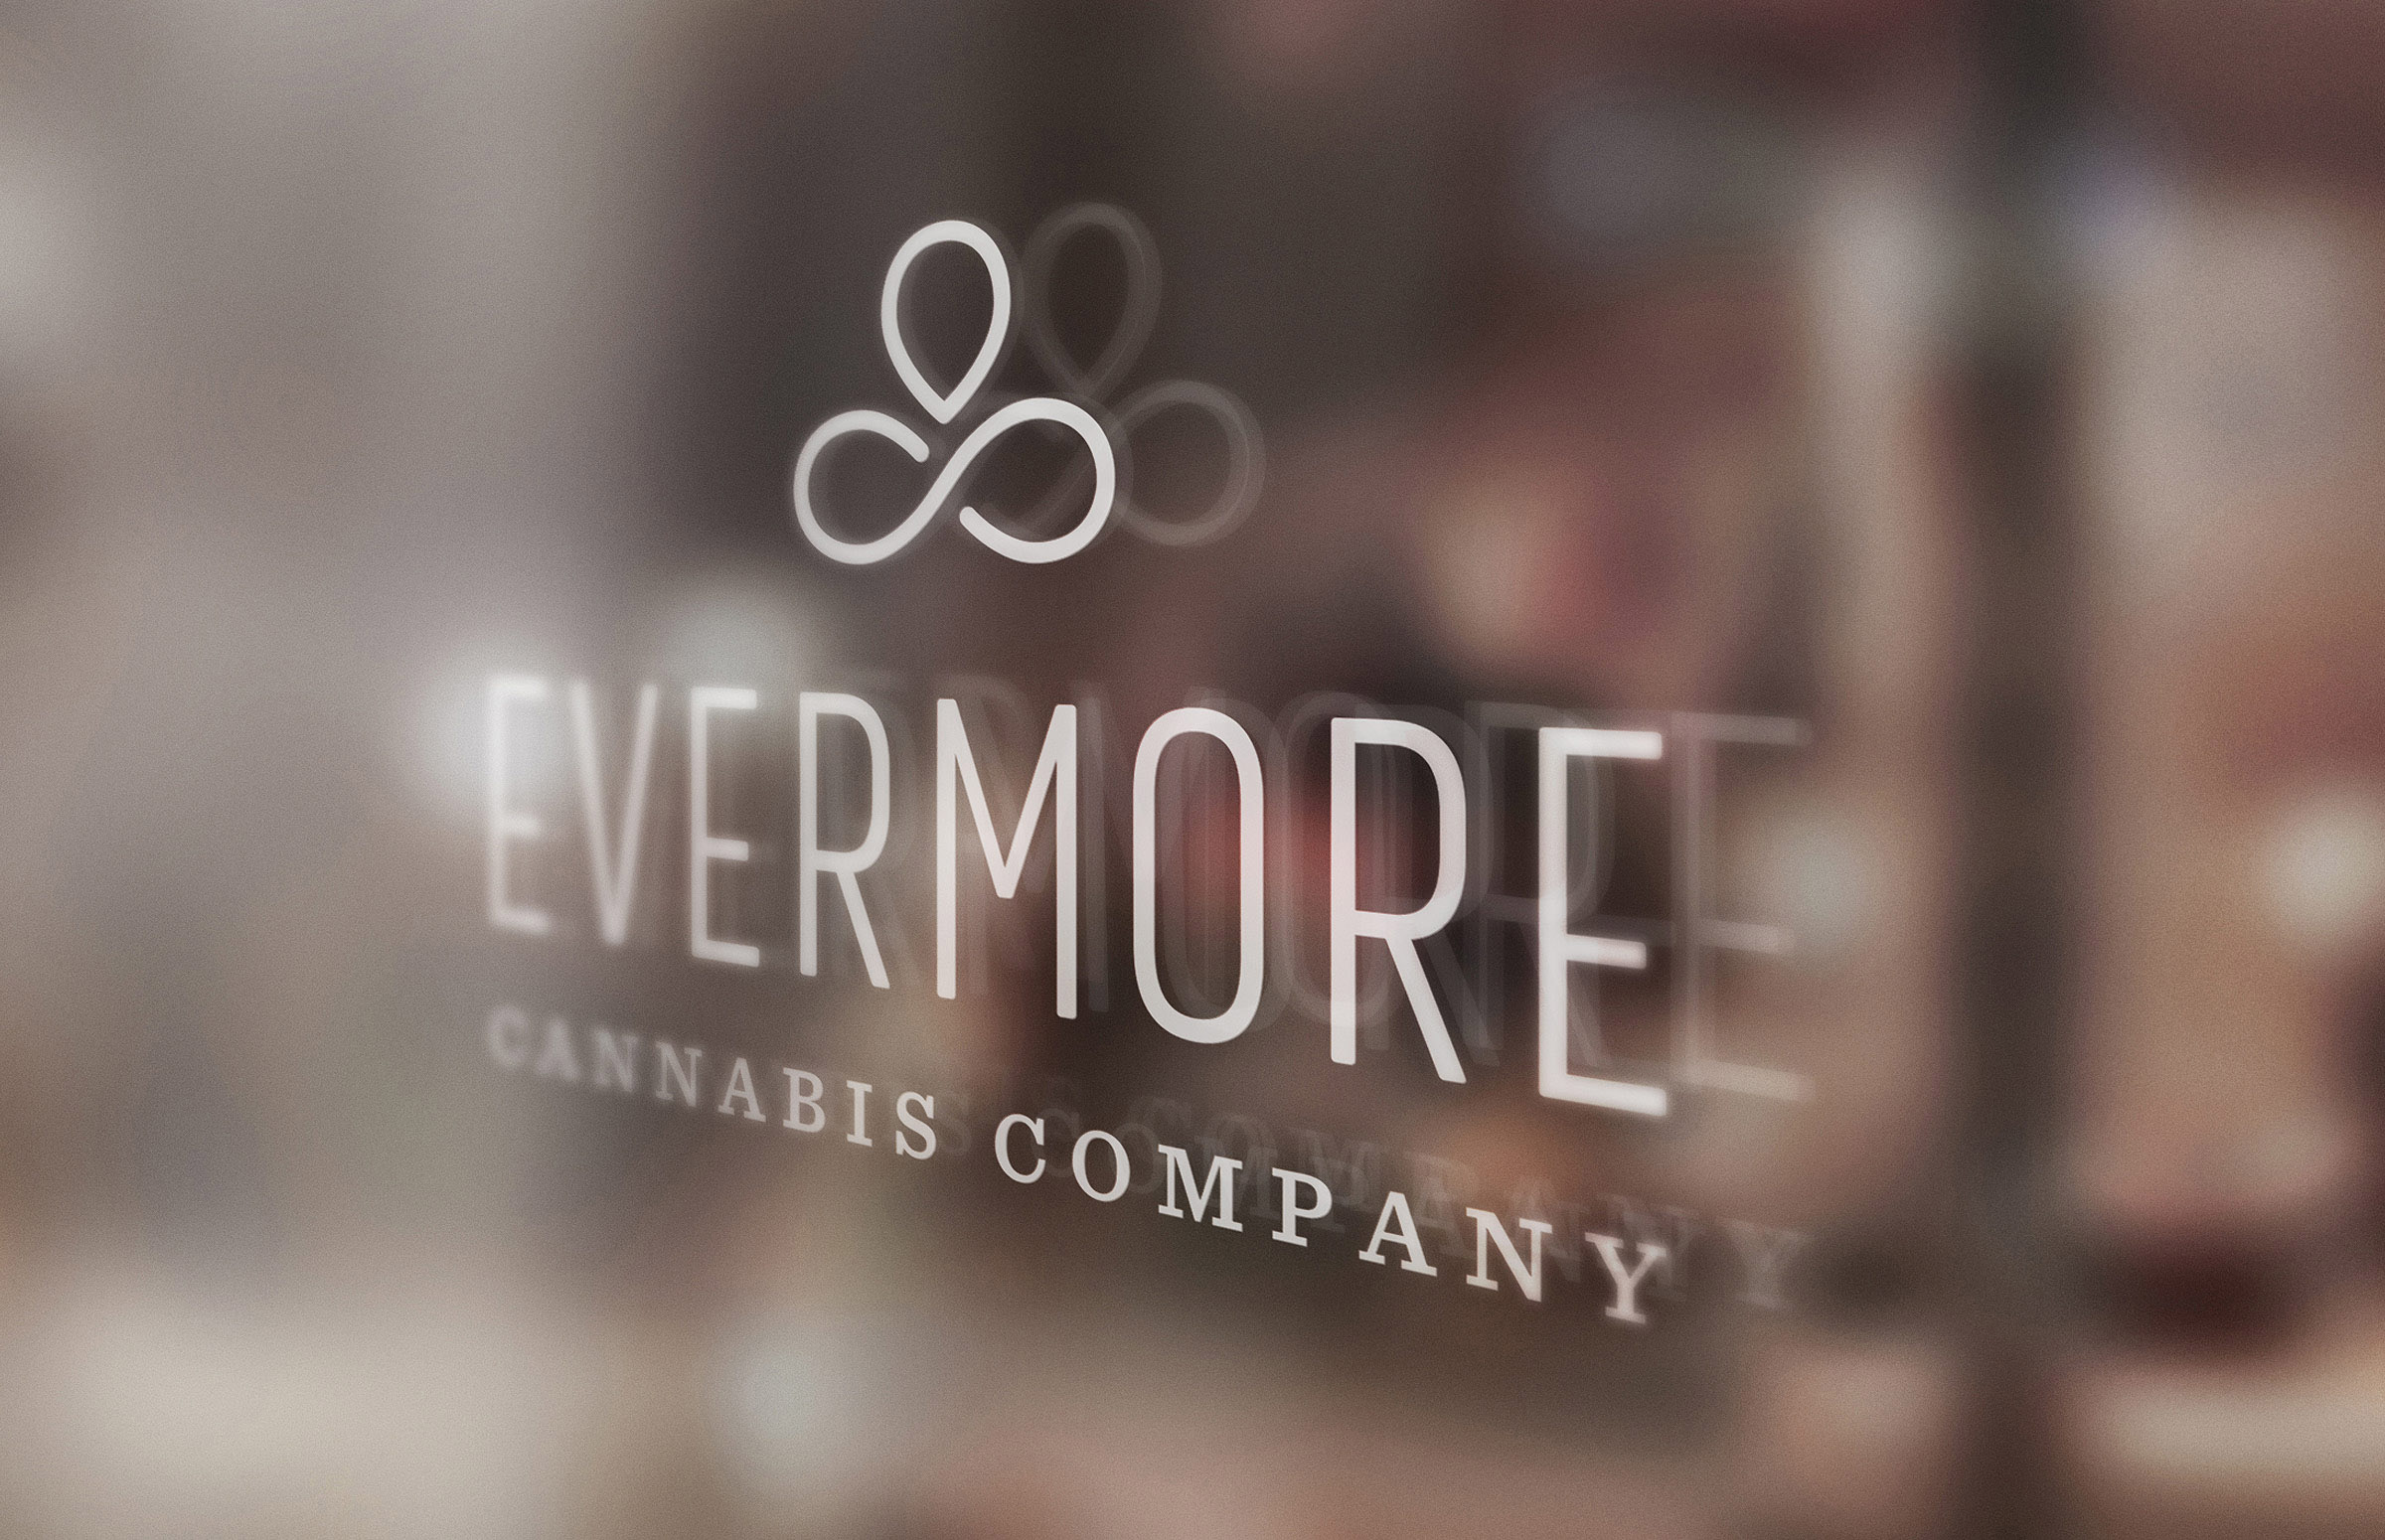 Evermore Cannabis Company: Door Signage